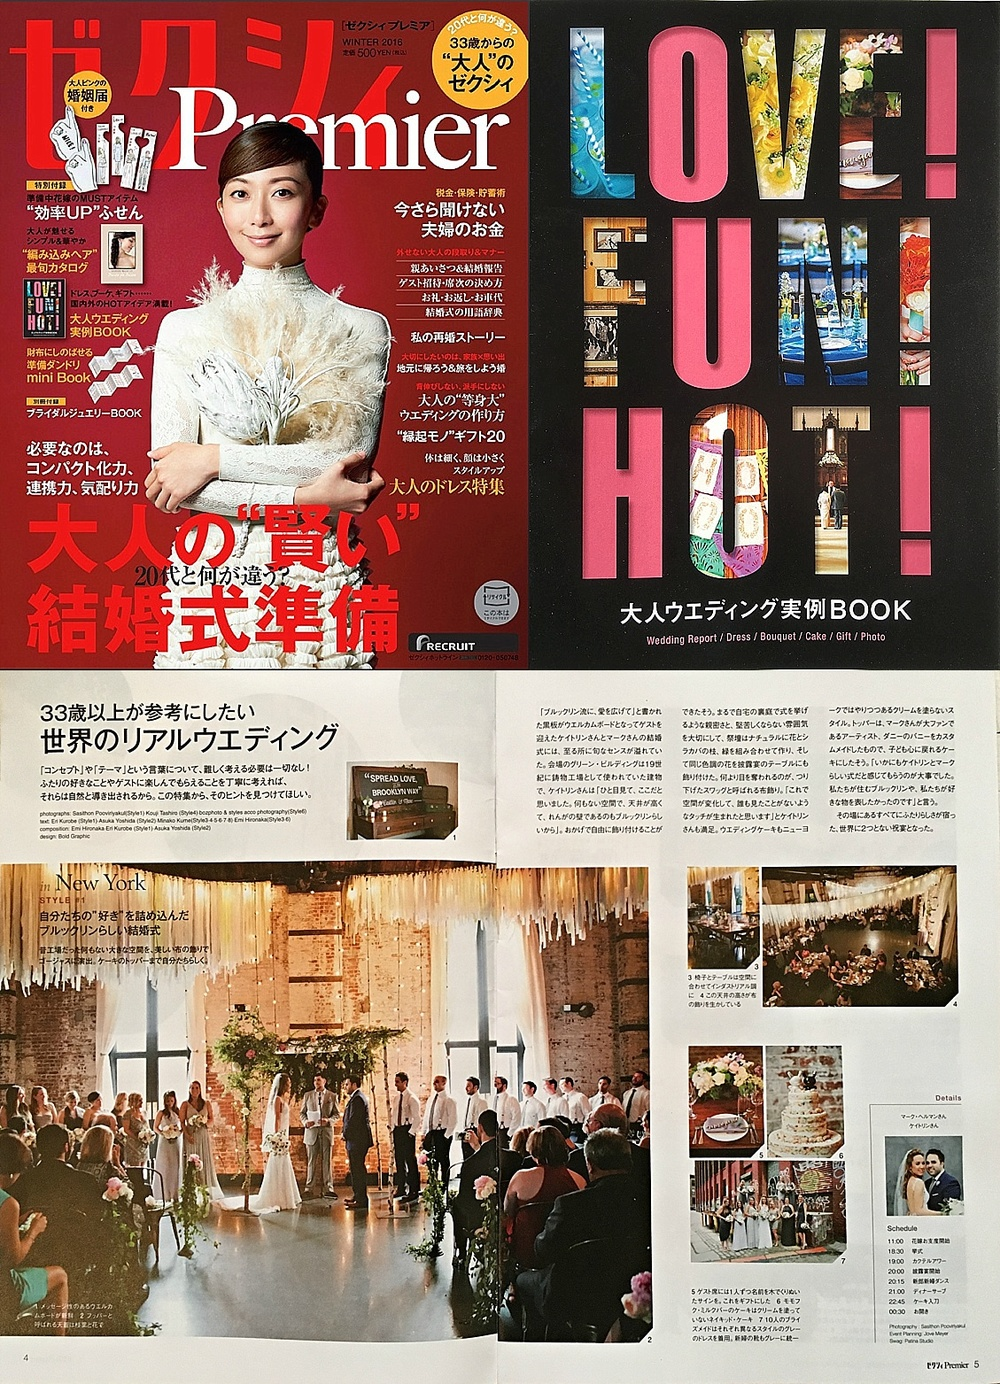 jove meyer events featured in japanese magazine.jpg